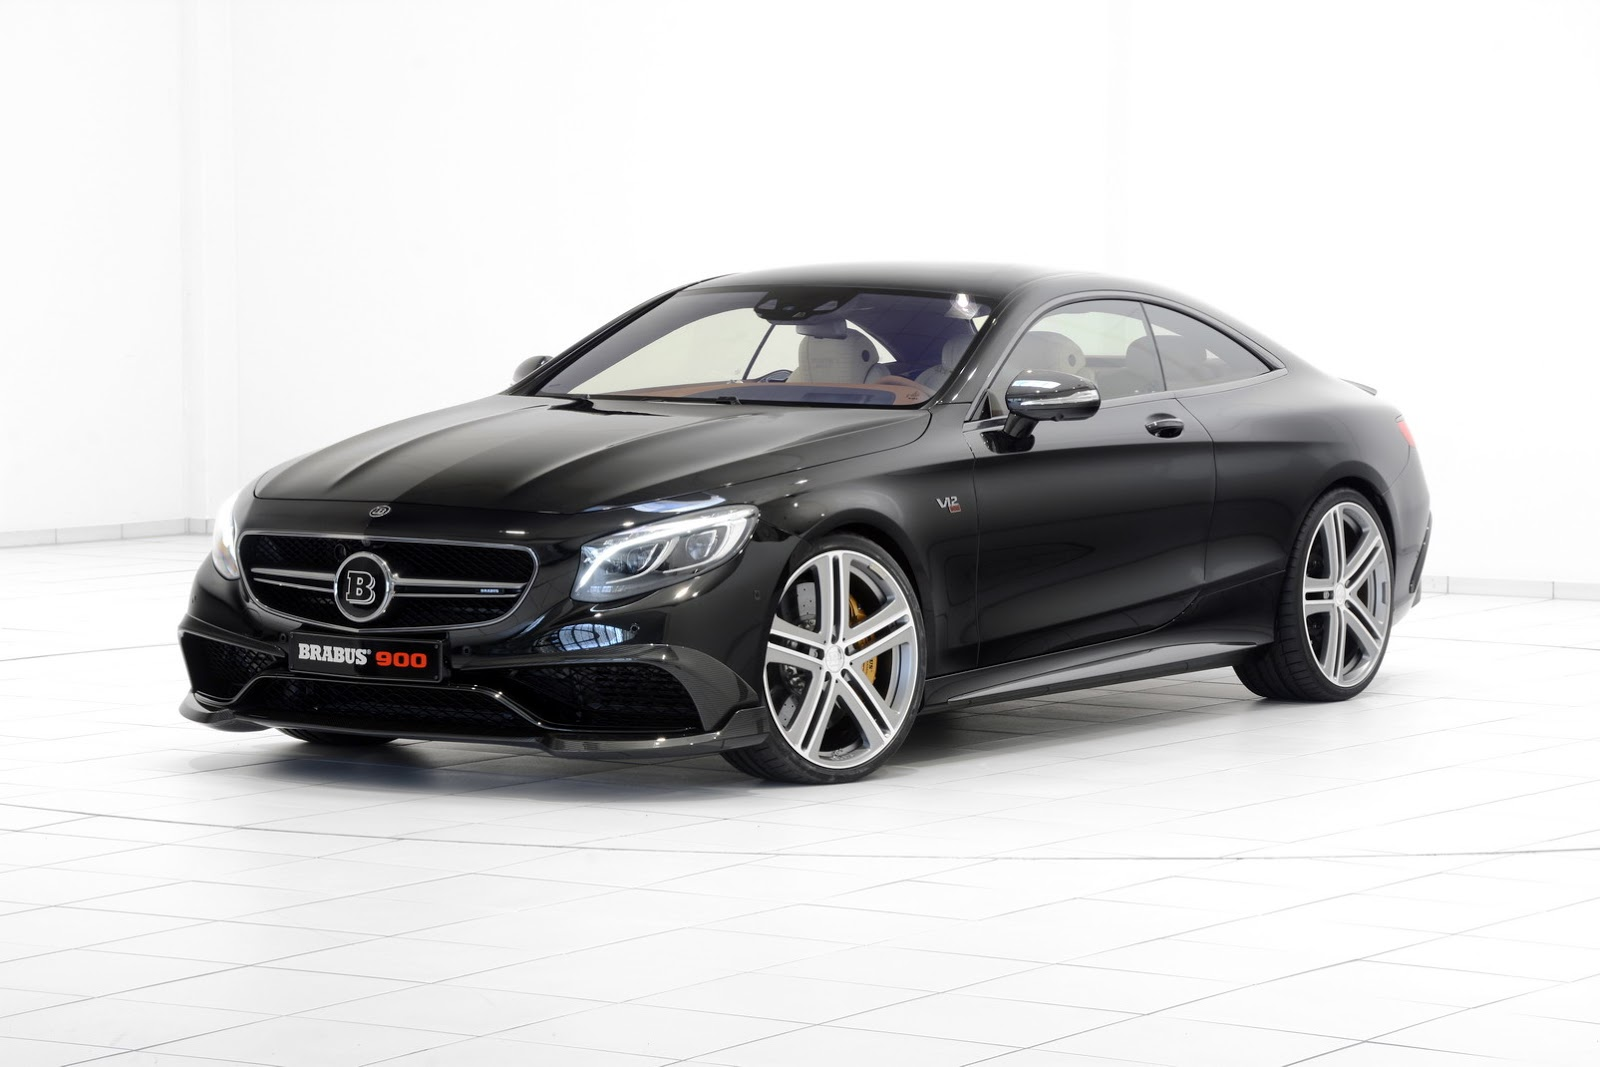 brabus launches a mercedes amg s65 amg rocket with 900ps. Black Bedroom Furniture Sets. Home Design Ideas